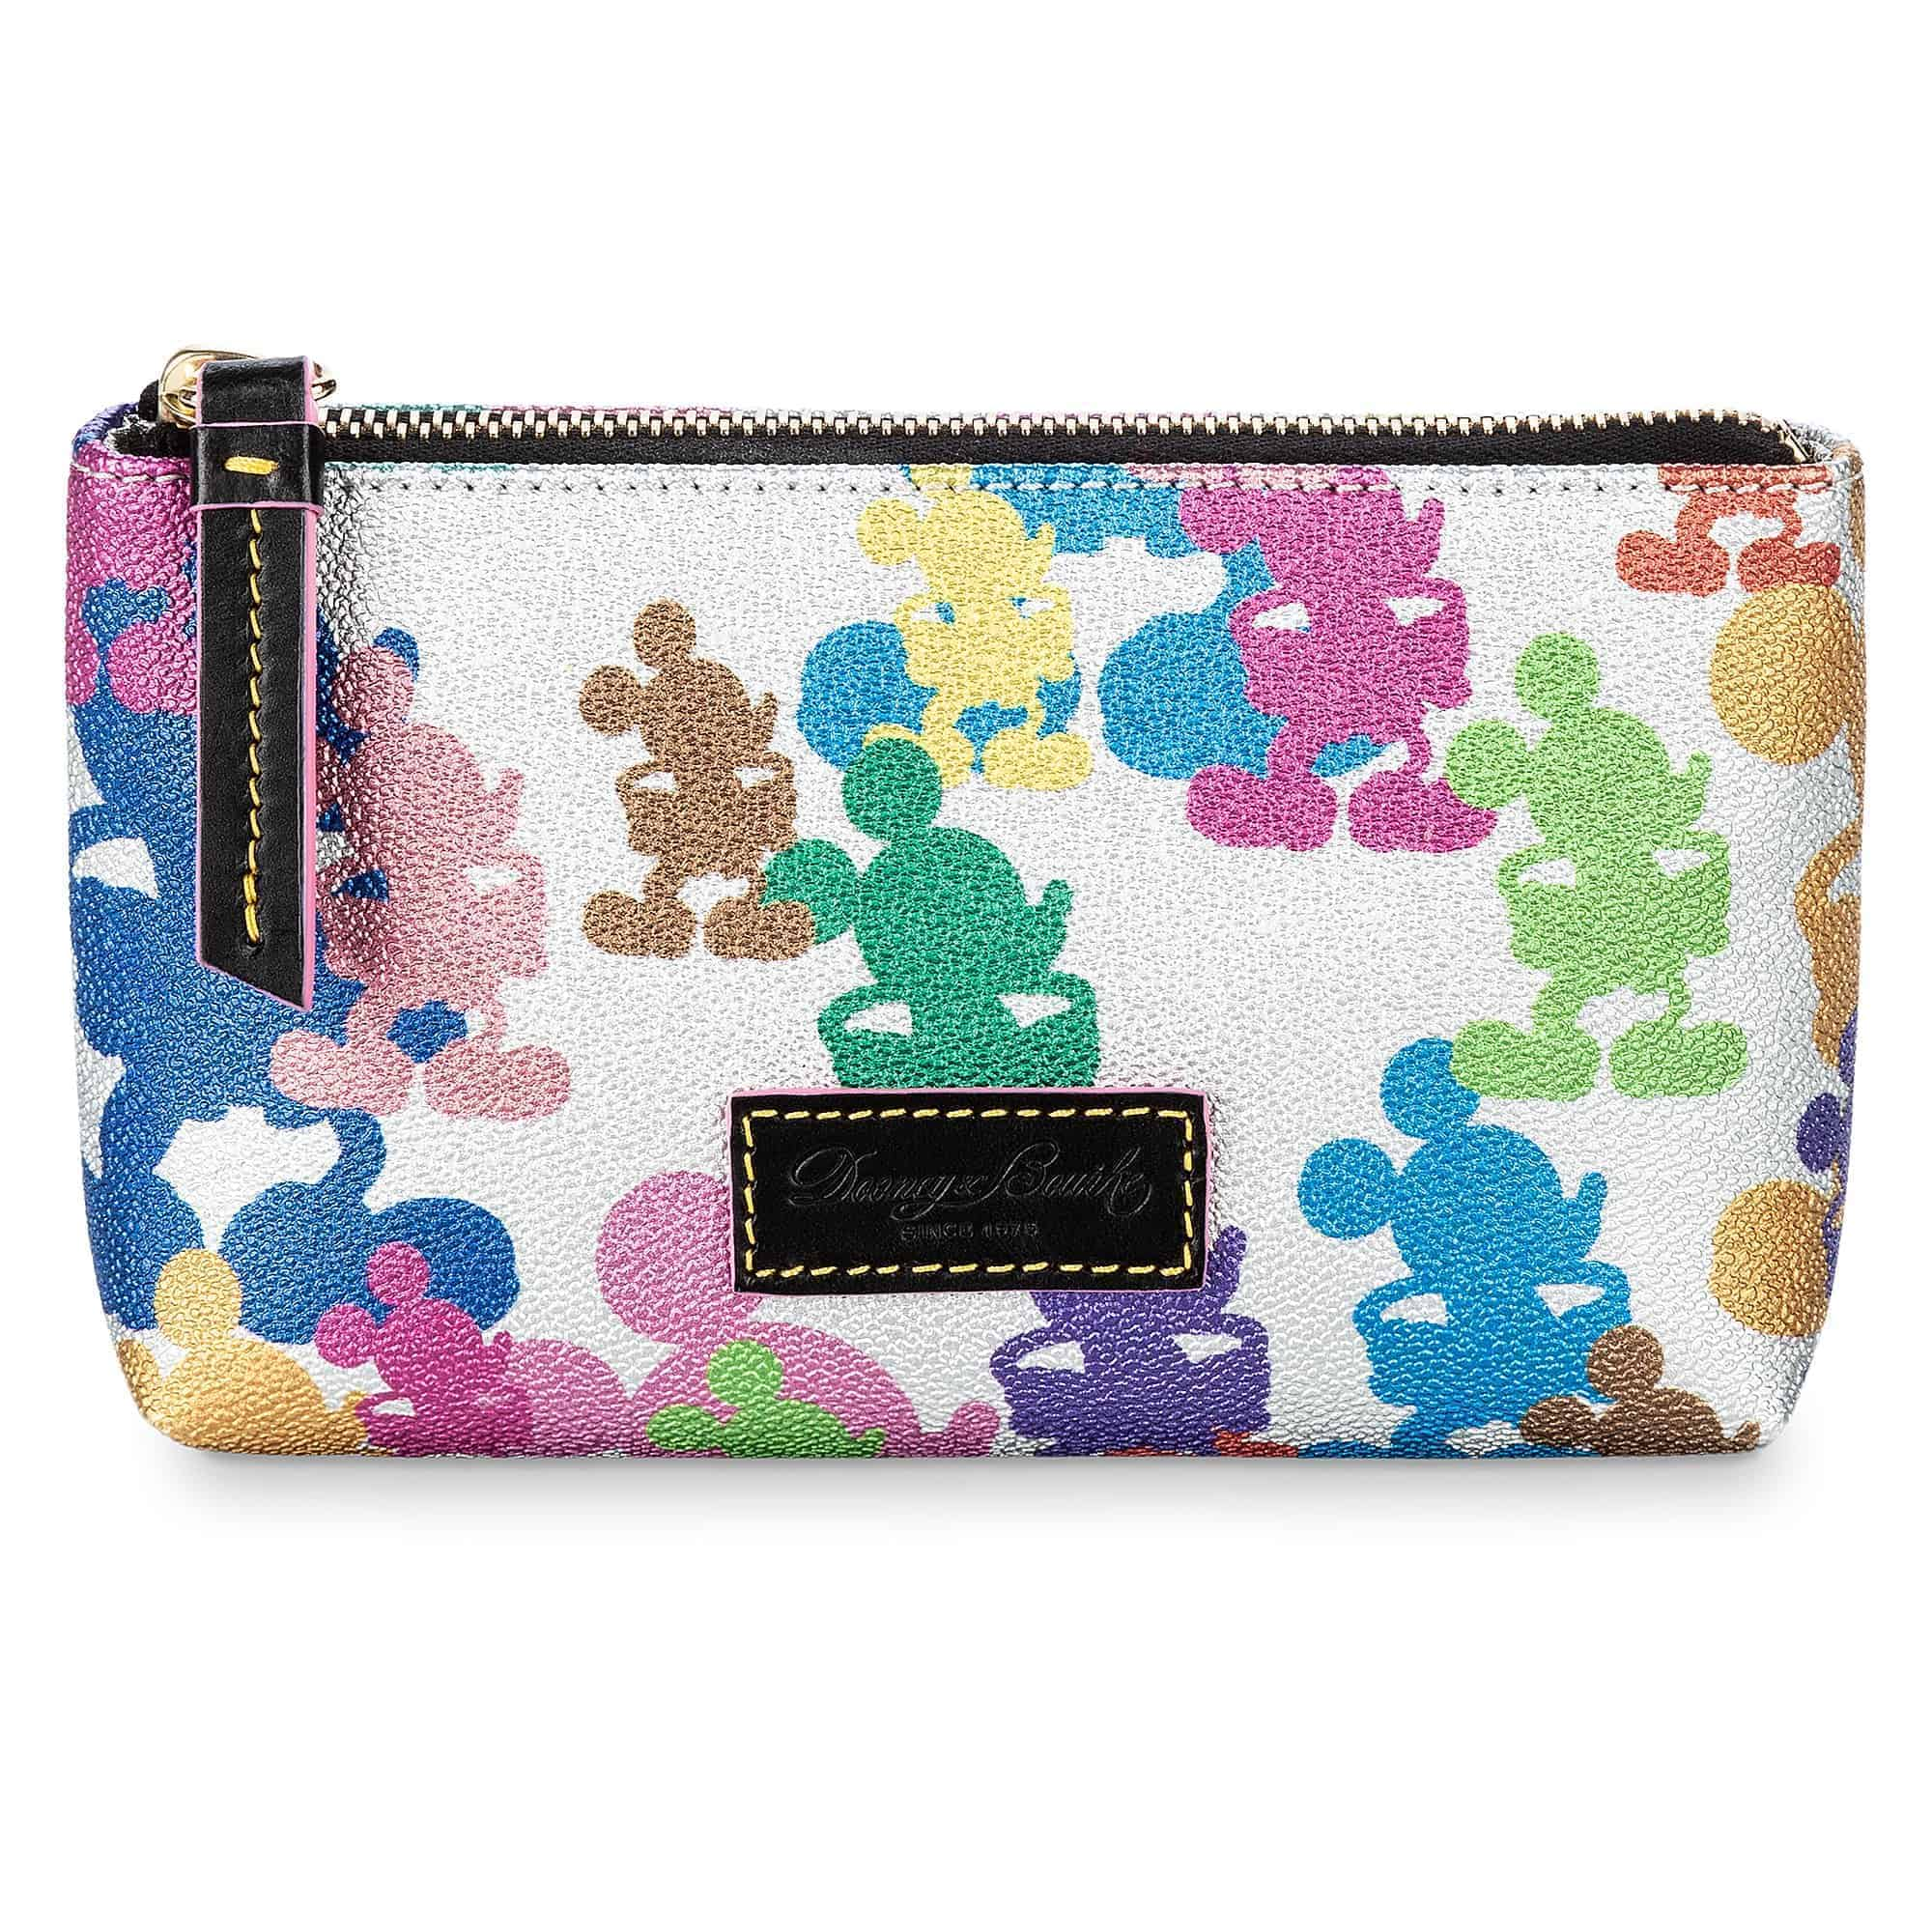 Mickey Mouse Silver Cosmetic Bag by Dooney & Bourke – 10th Anniversary